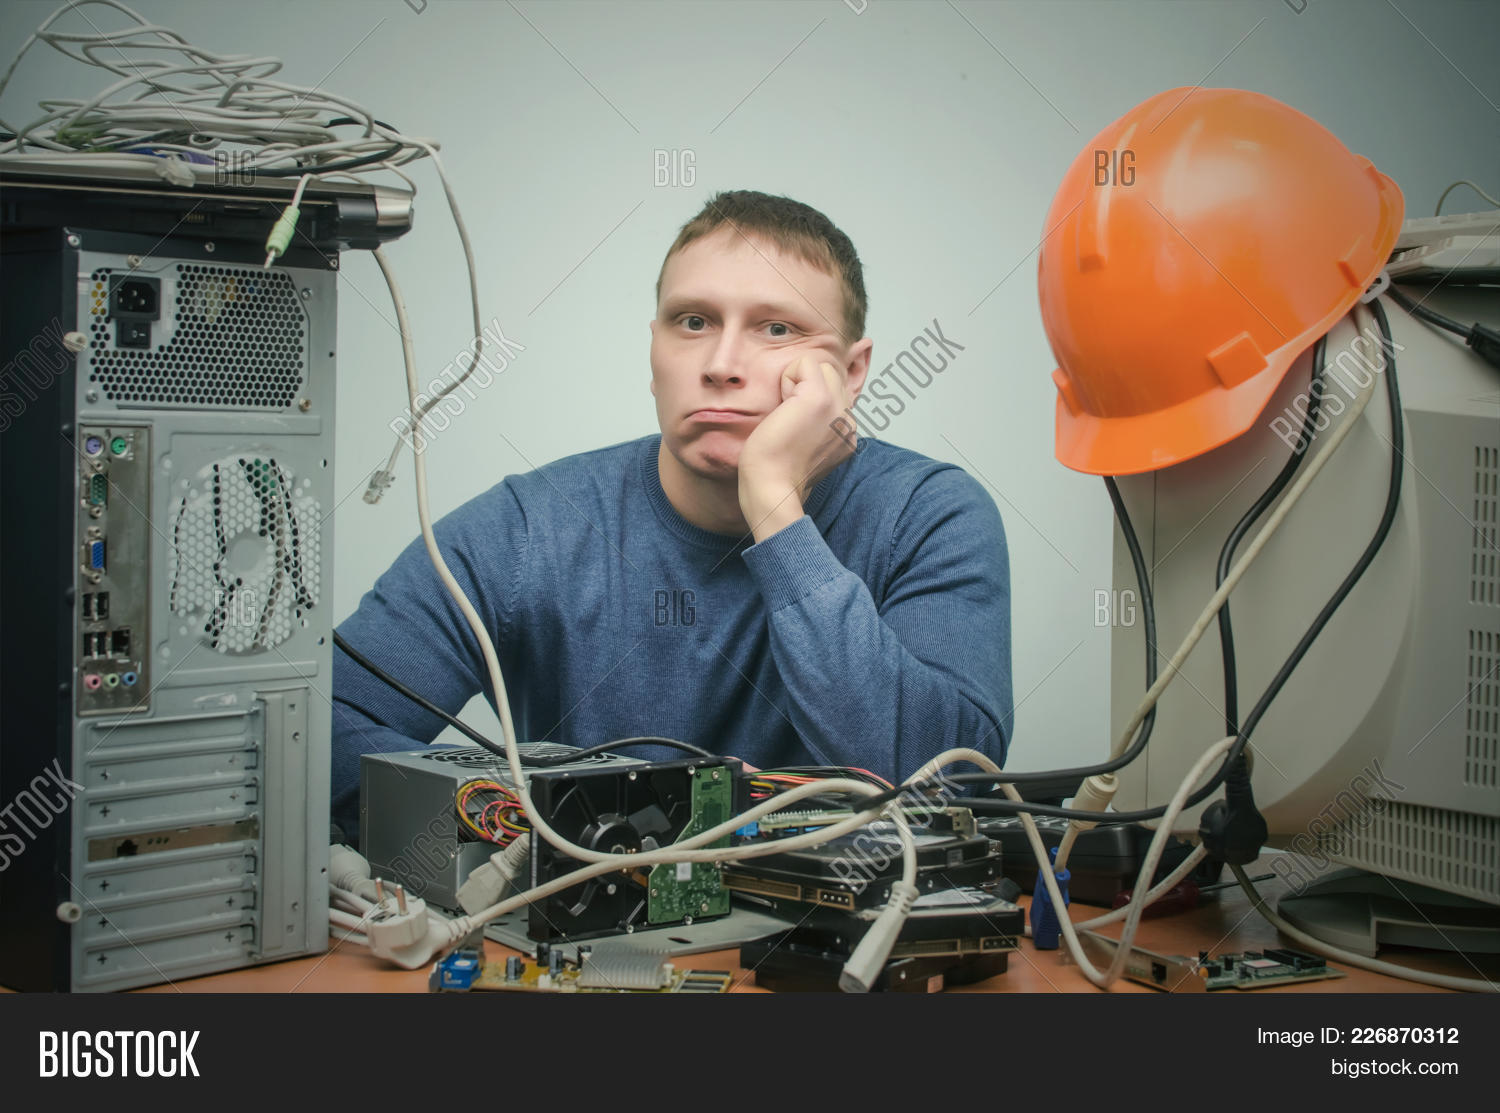 tired bored computer image photo free trial bigstock